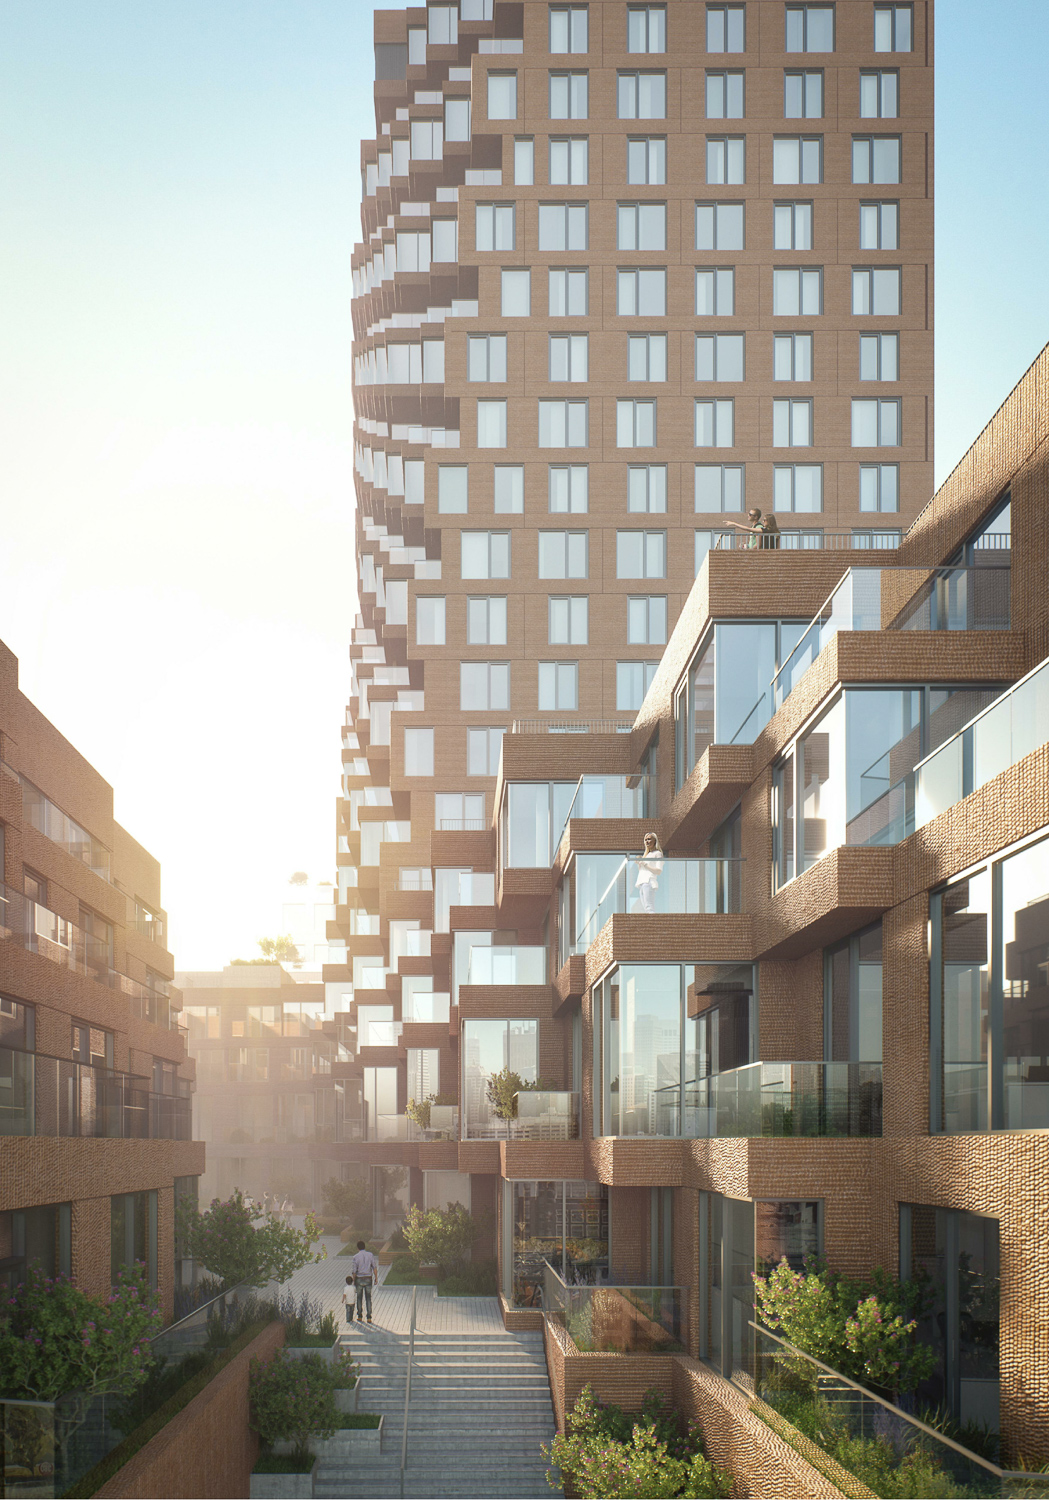 The Canyon at Parcel A narrow courtyard, design by MVRDV, rendering by pixelflakes